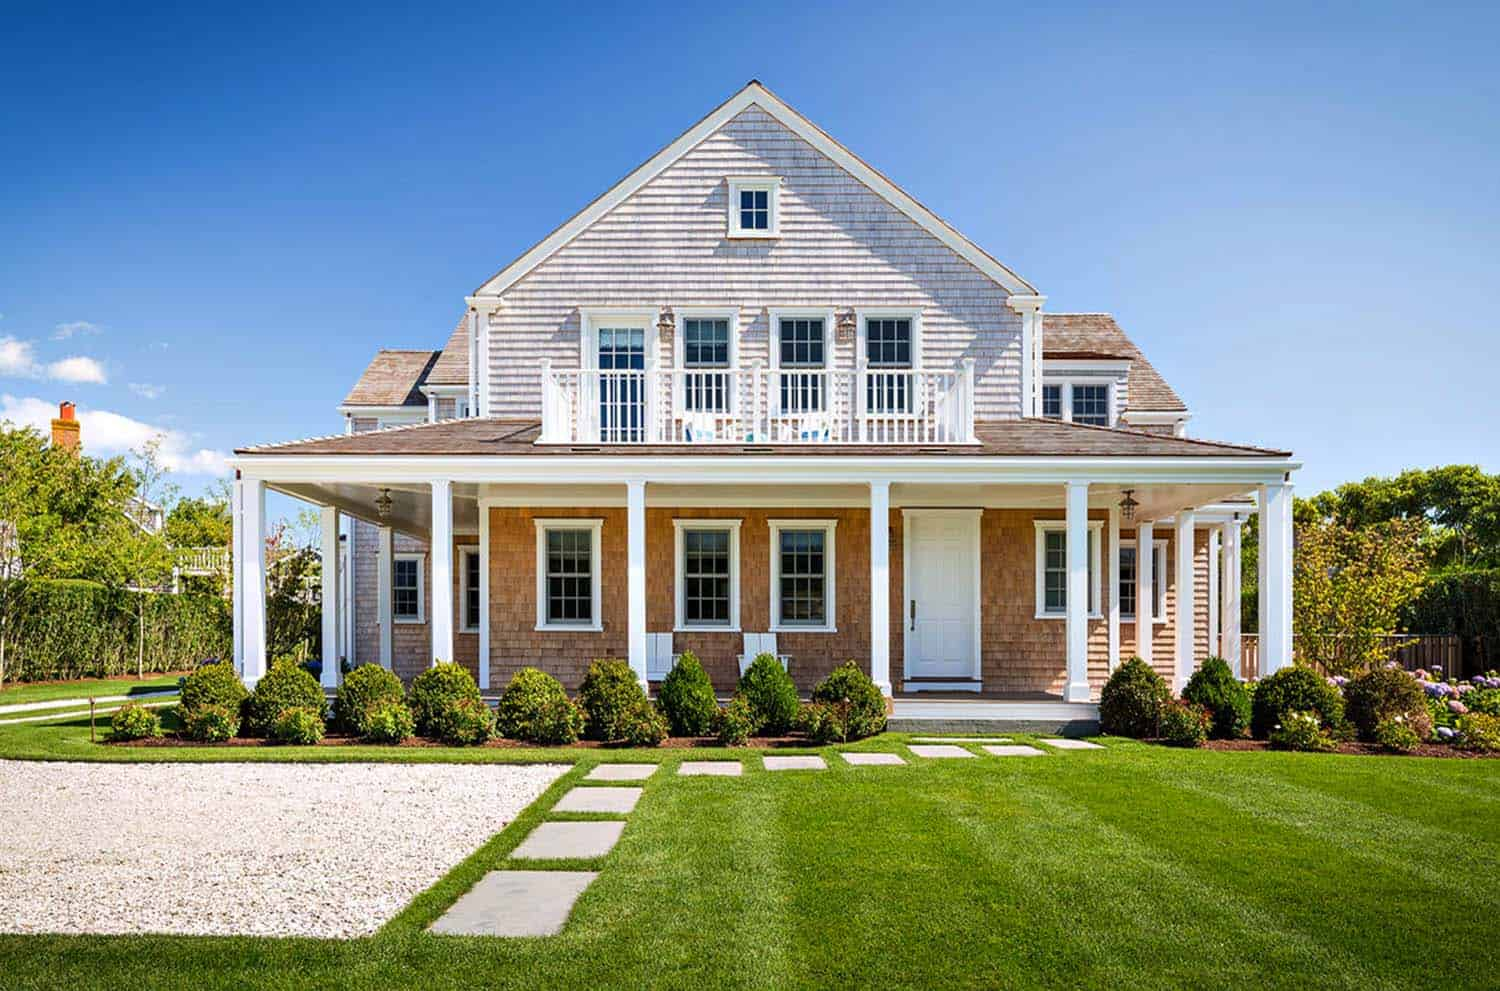 shingle style house with beach chic interiors on nantucket island. Black Bedroom Furniture Sets. Home Design Ideas